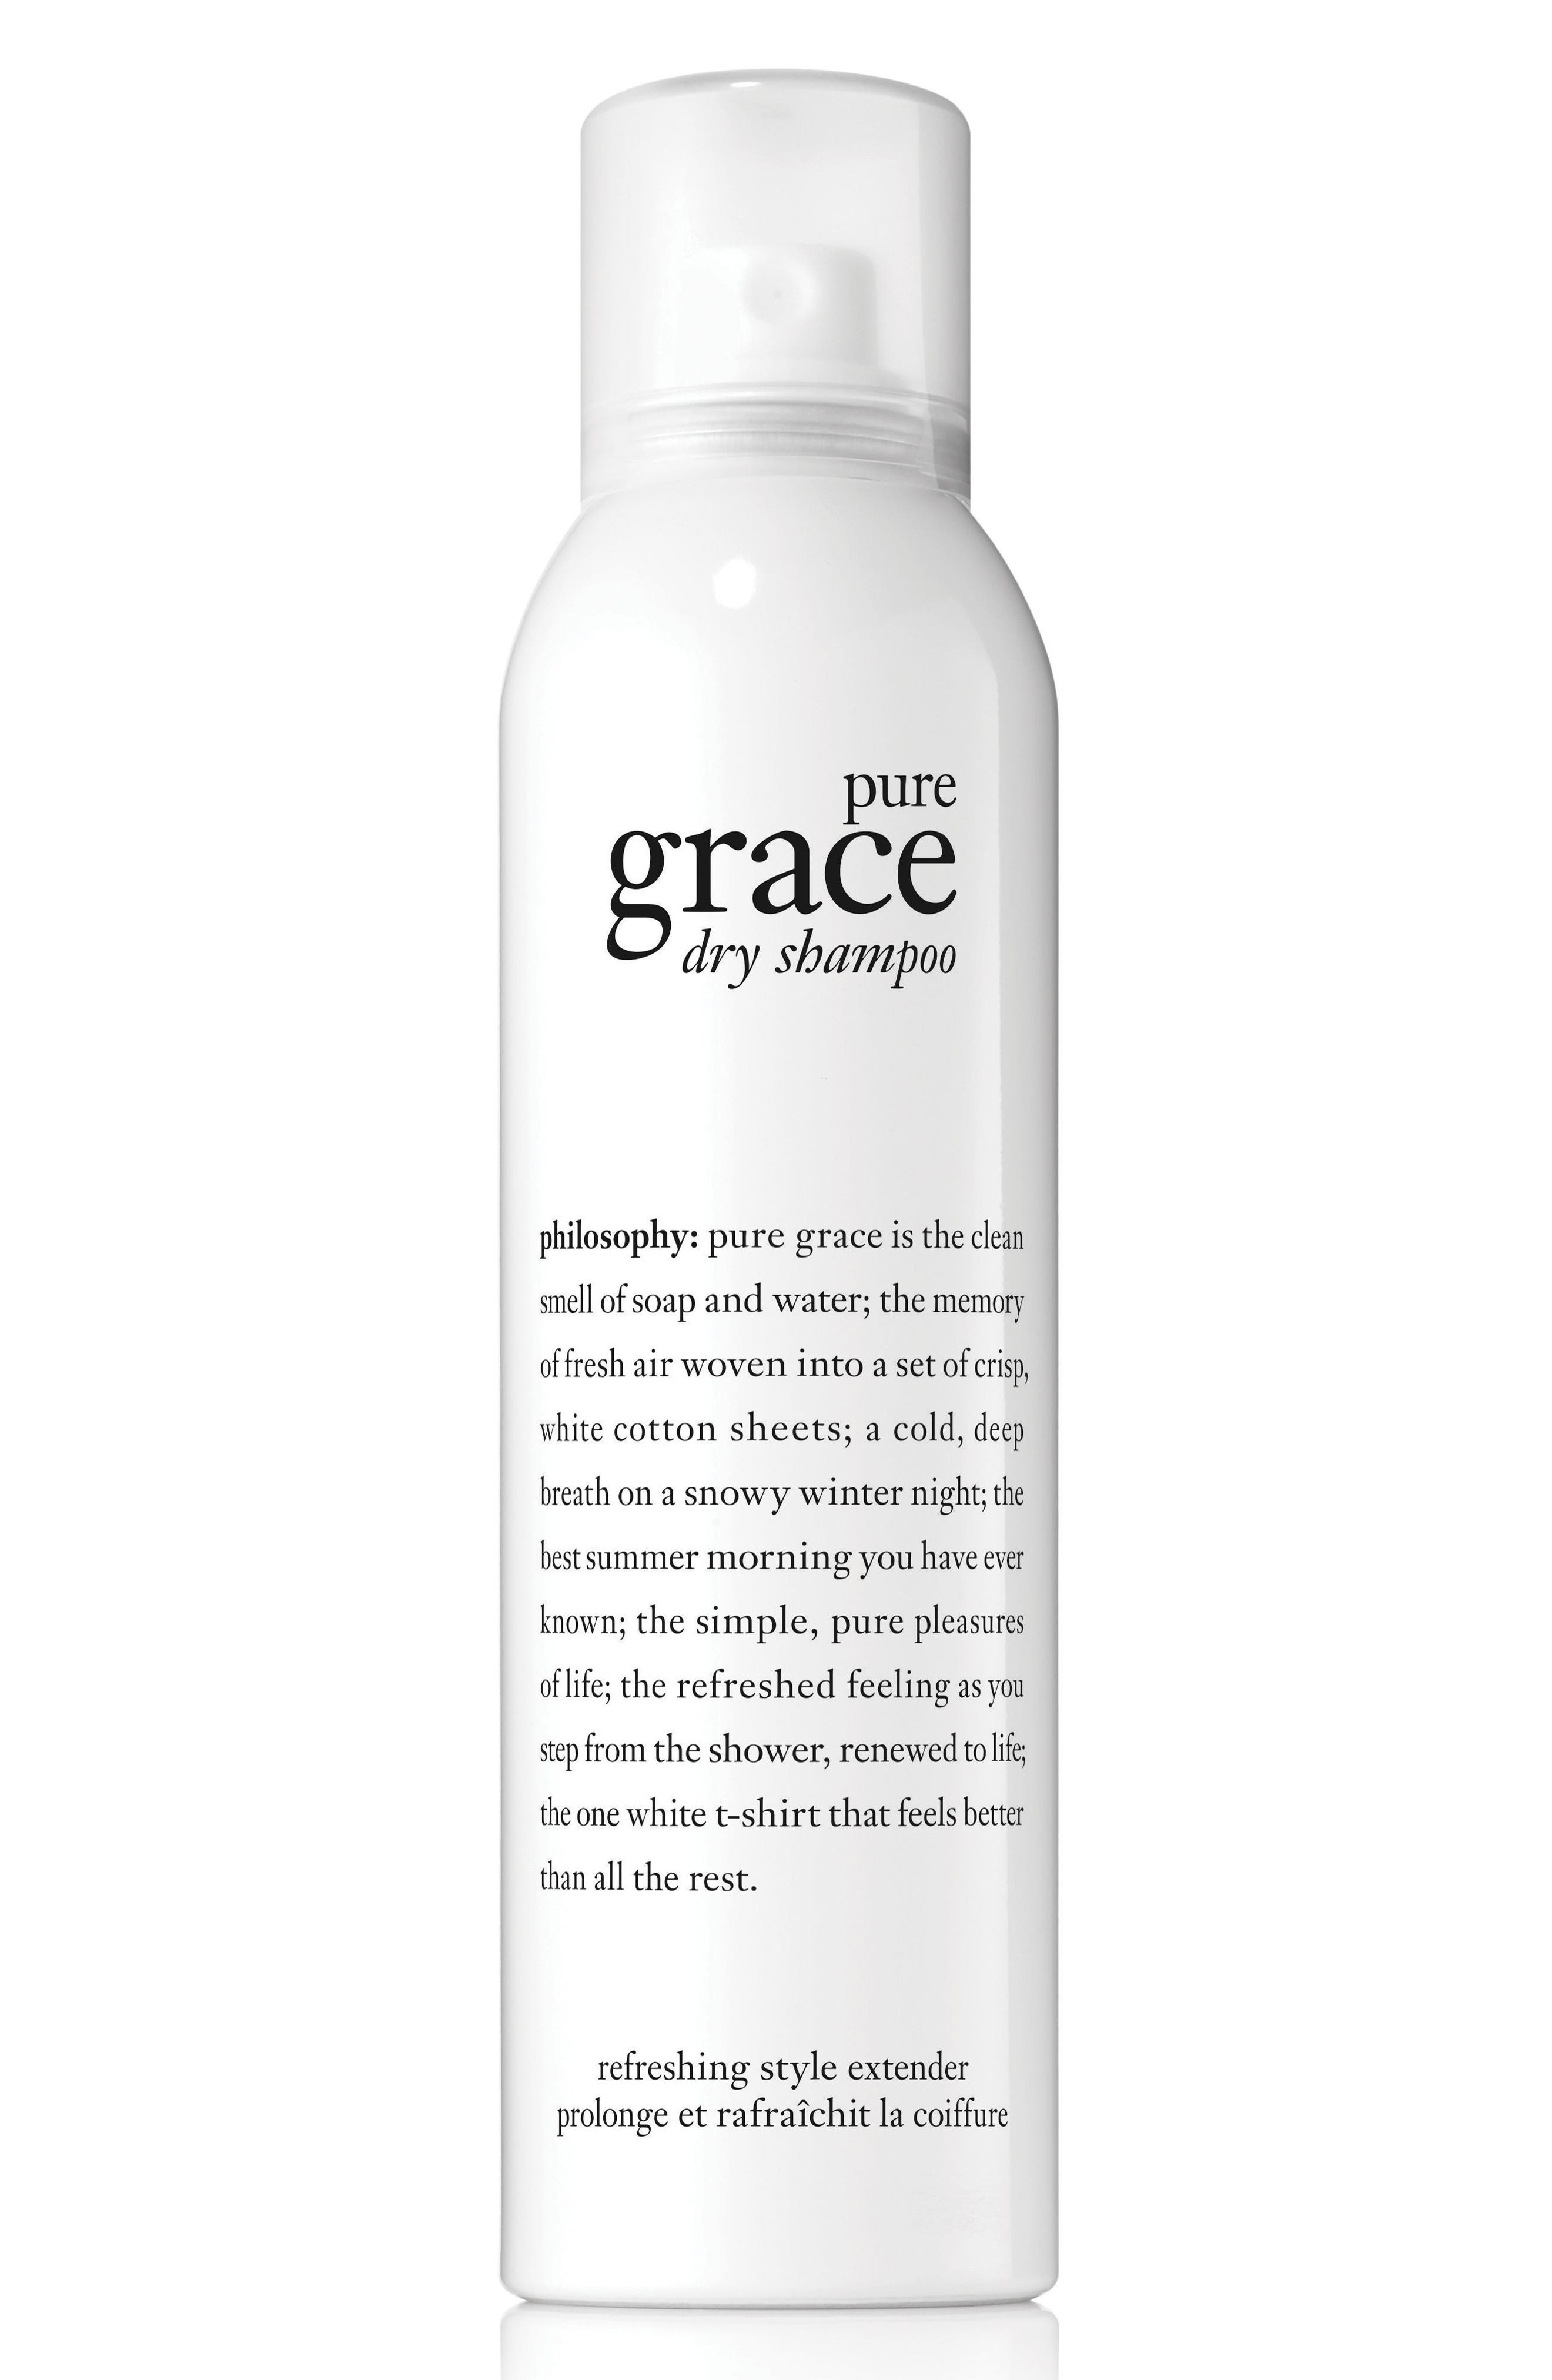 Alternate Image 1 Selected - philosophy pure grace dry shampoo